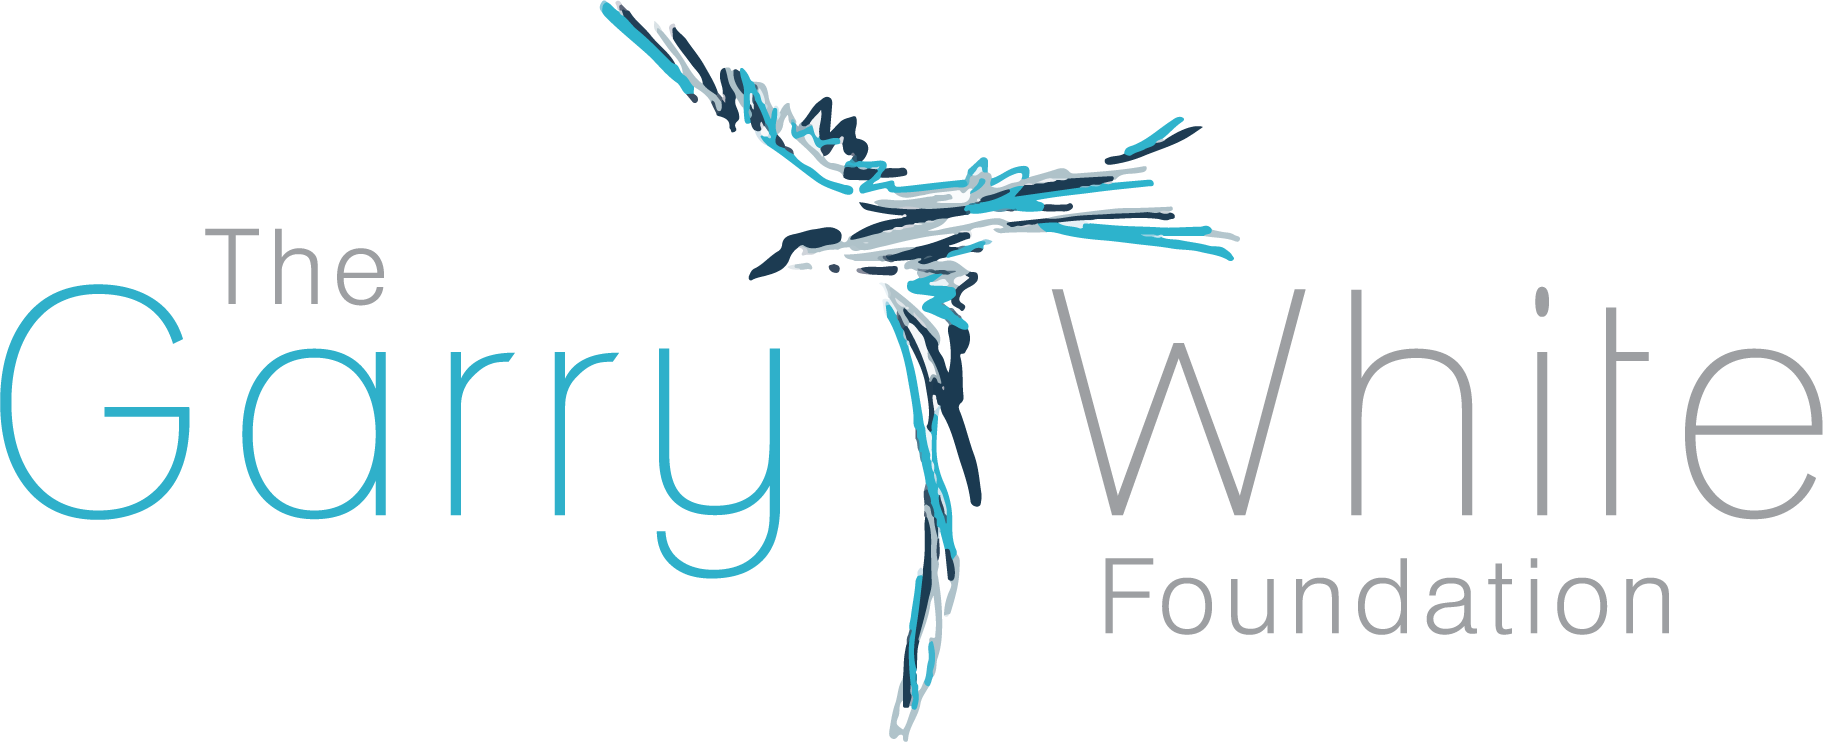 The Garry White Foundation is a philanthropic foundation based in Melbourne, Victoria.